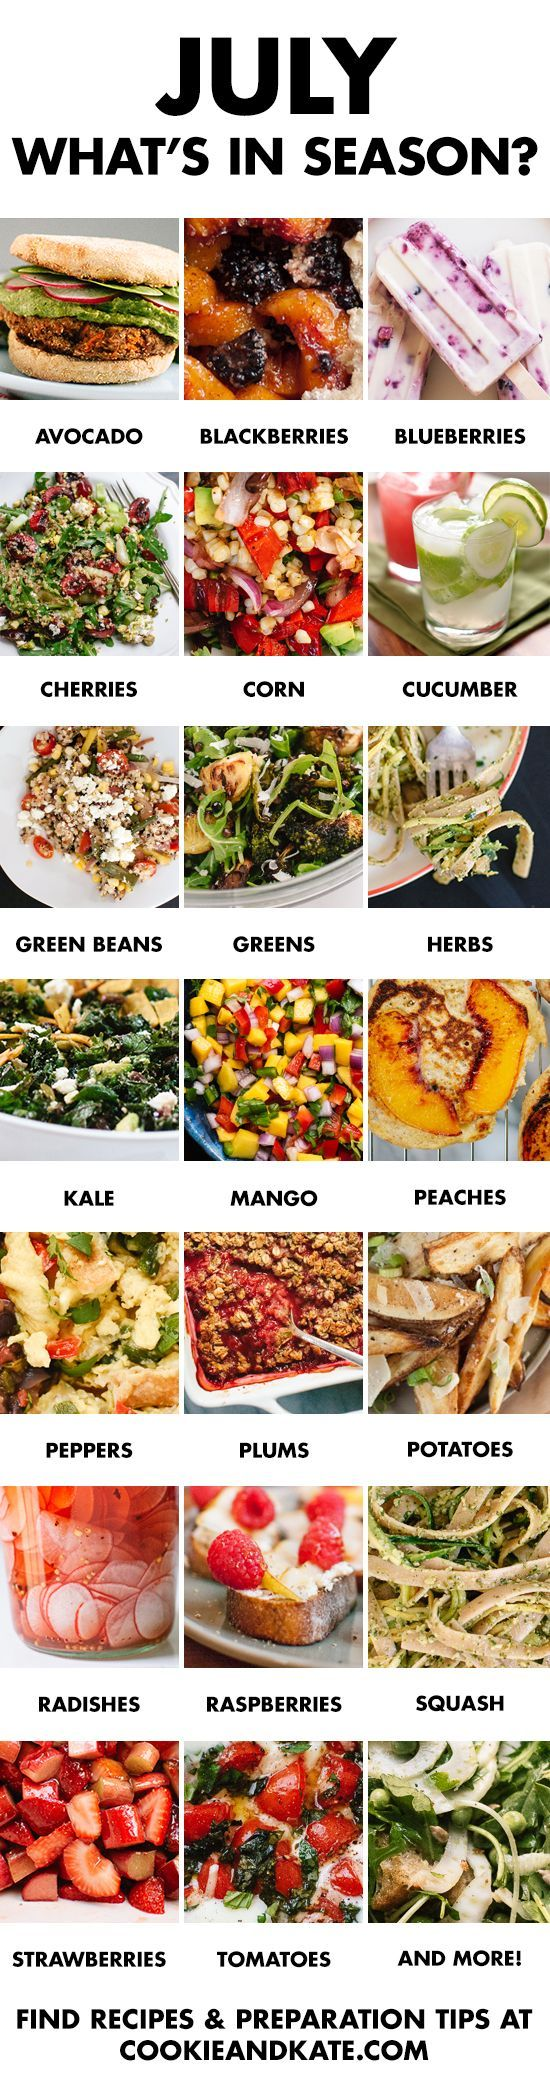 Eat seasonally with this guide to July fruits and vegetables. Find recipes and preparation tips at cookieandkate.com